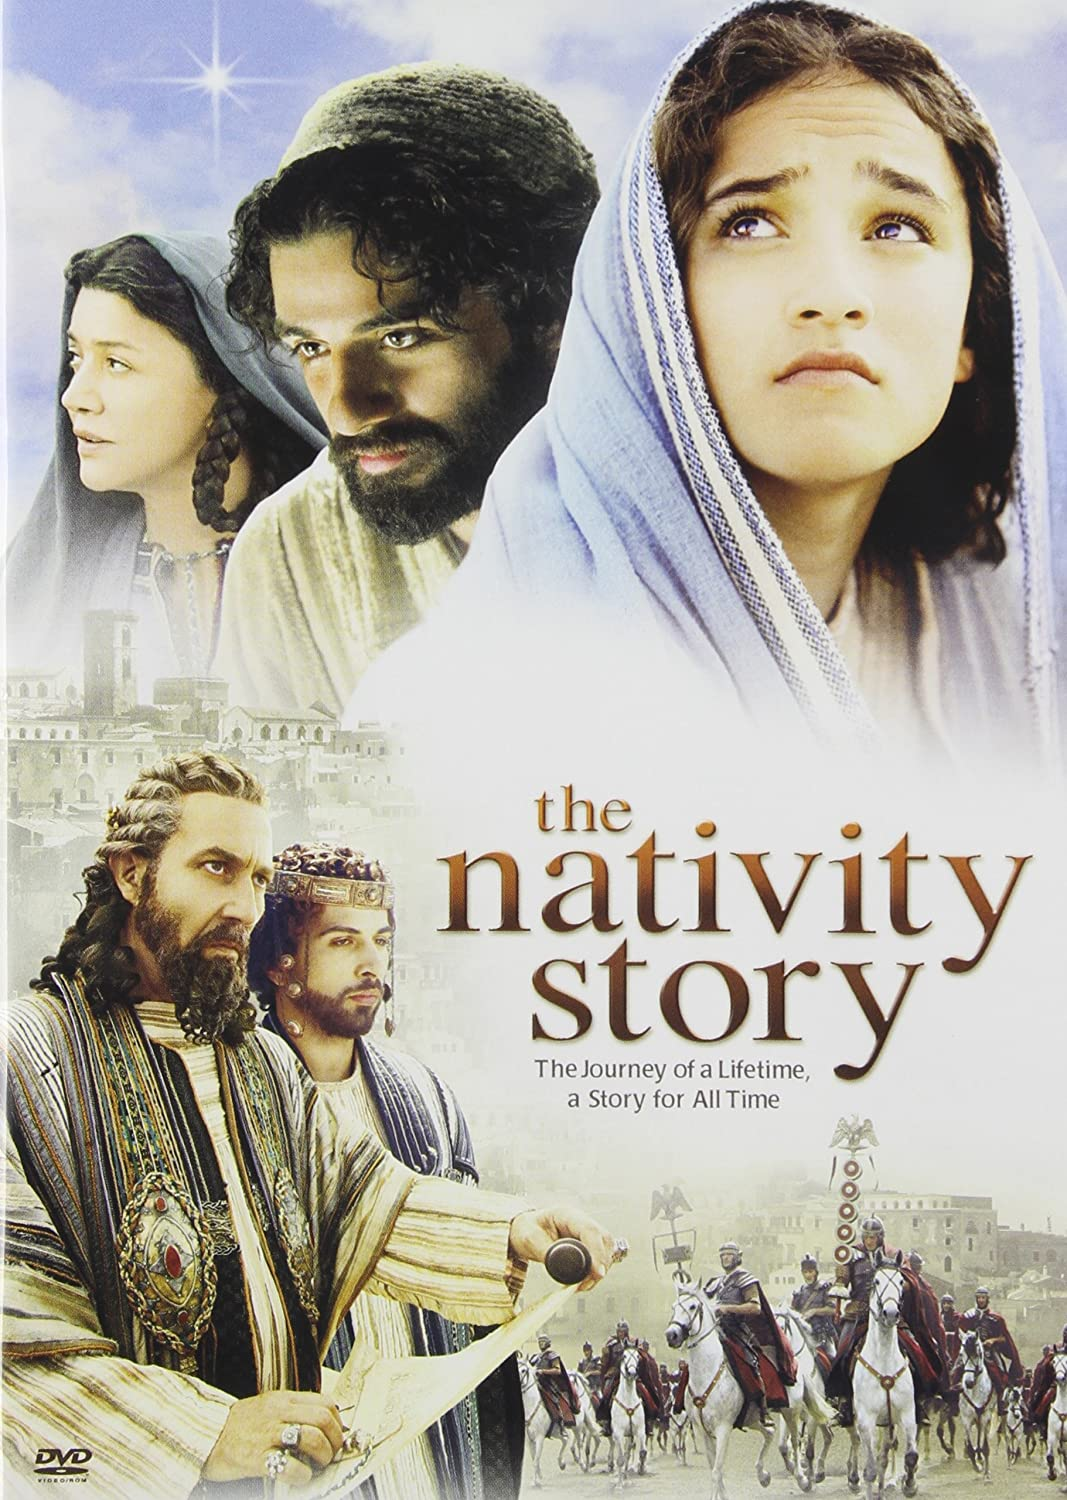 Celebrate the true meaning of Christmas with The Nativity Story. | The Dating Divas